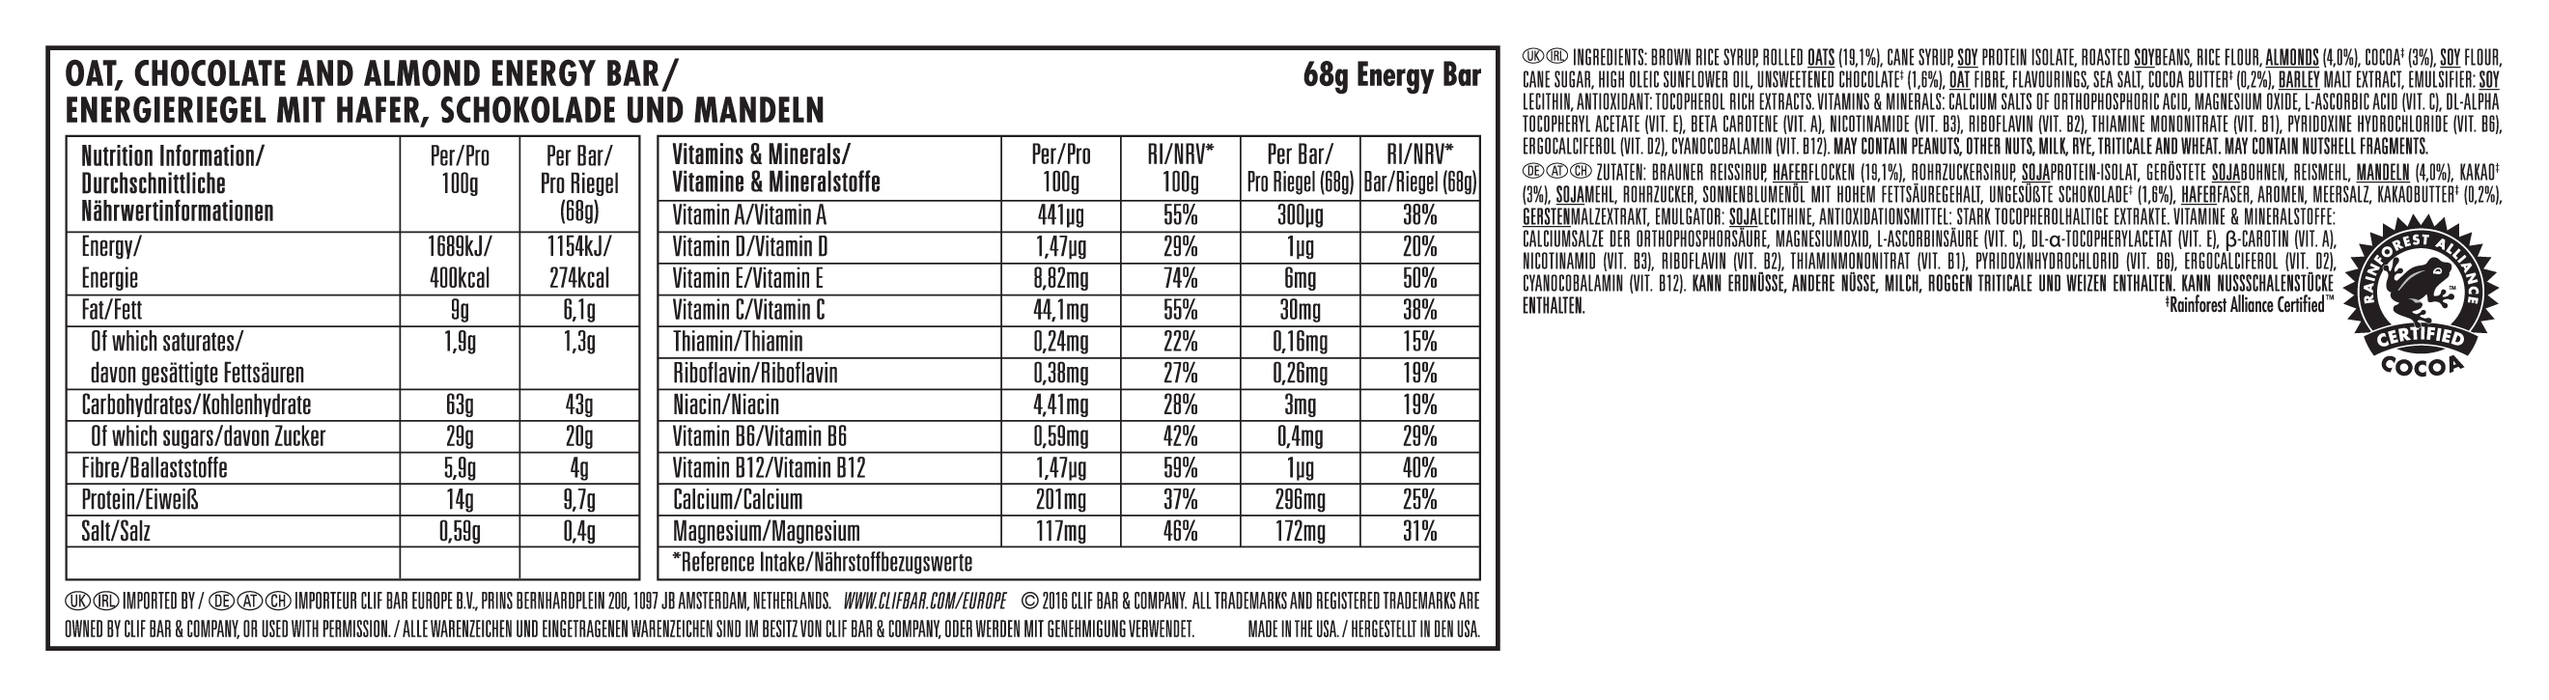 Clif Chocolate Almond Fudge flavour Energy bar 68g - Case of 12 Multisave (Best Before Date: 12/02/2021)